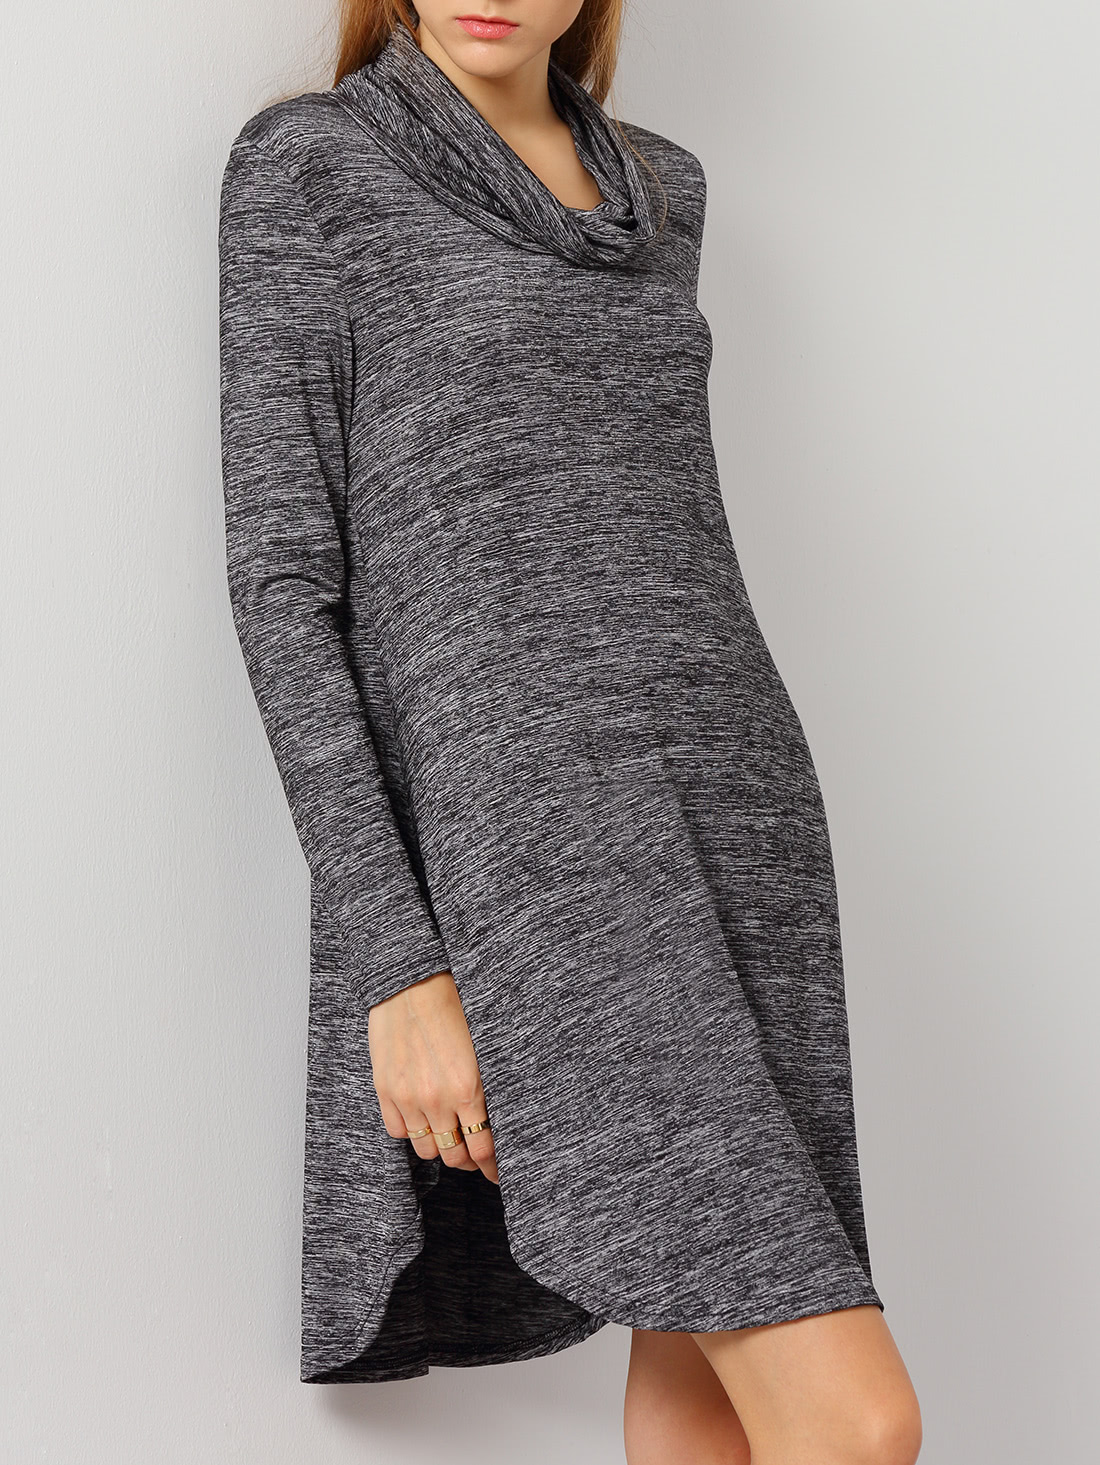 Grey Long Sleeve Turtleneck Dress dress161008591